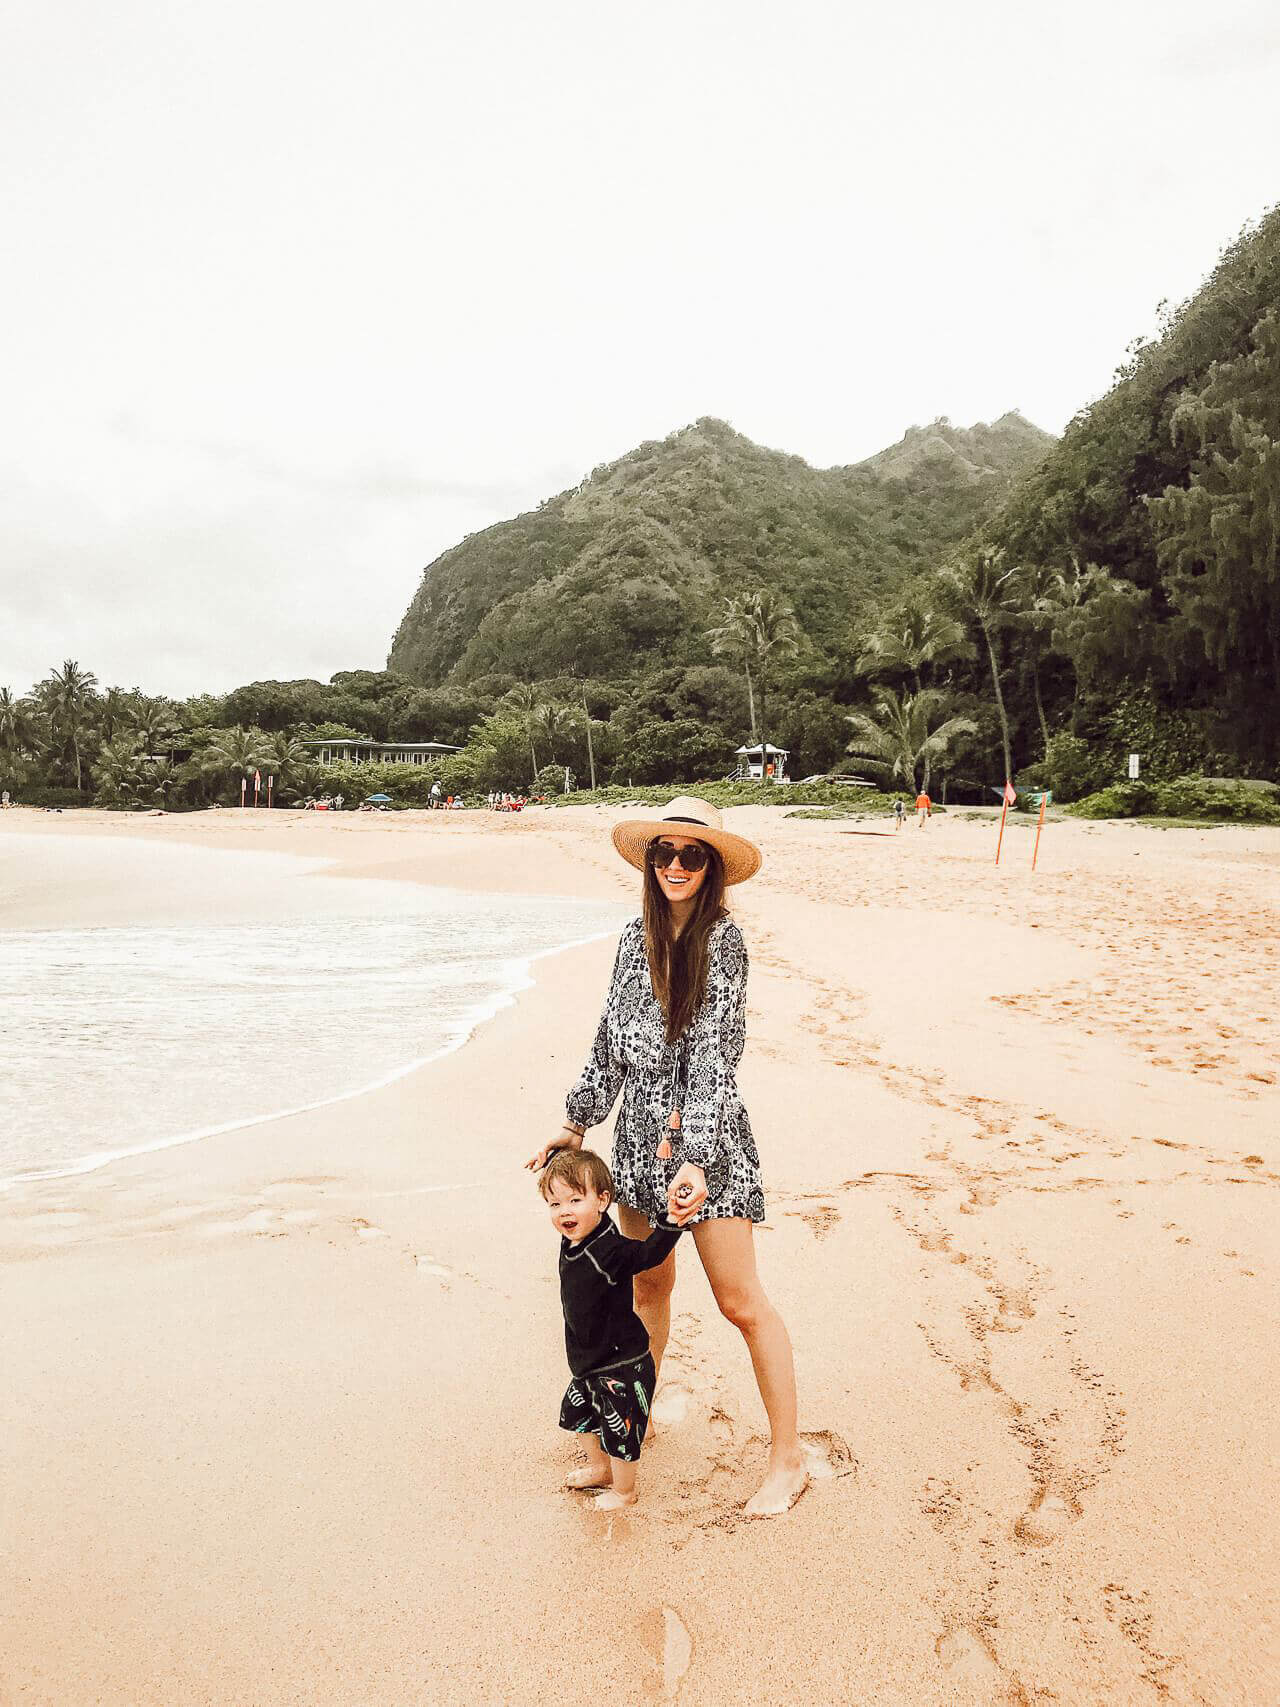 Kauai travel guide for the family! - M Loves M @marmar